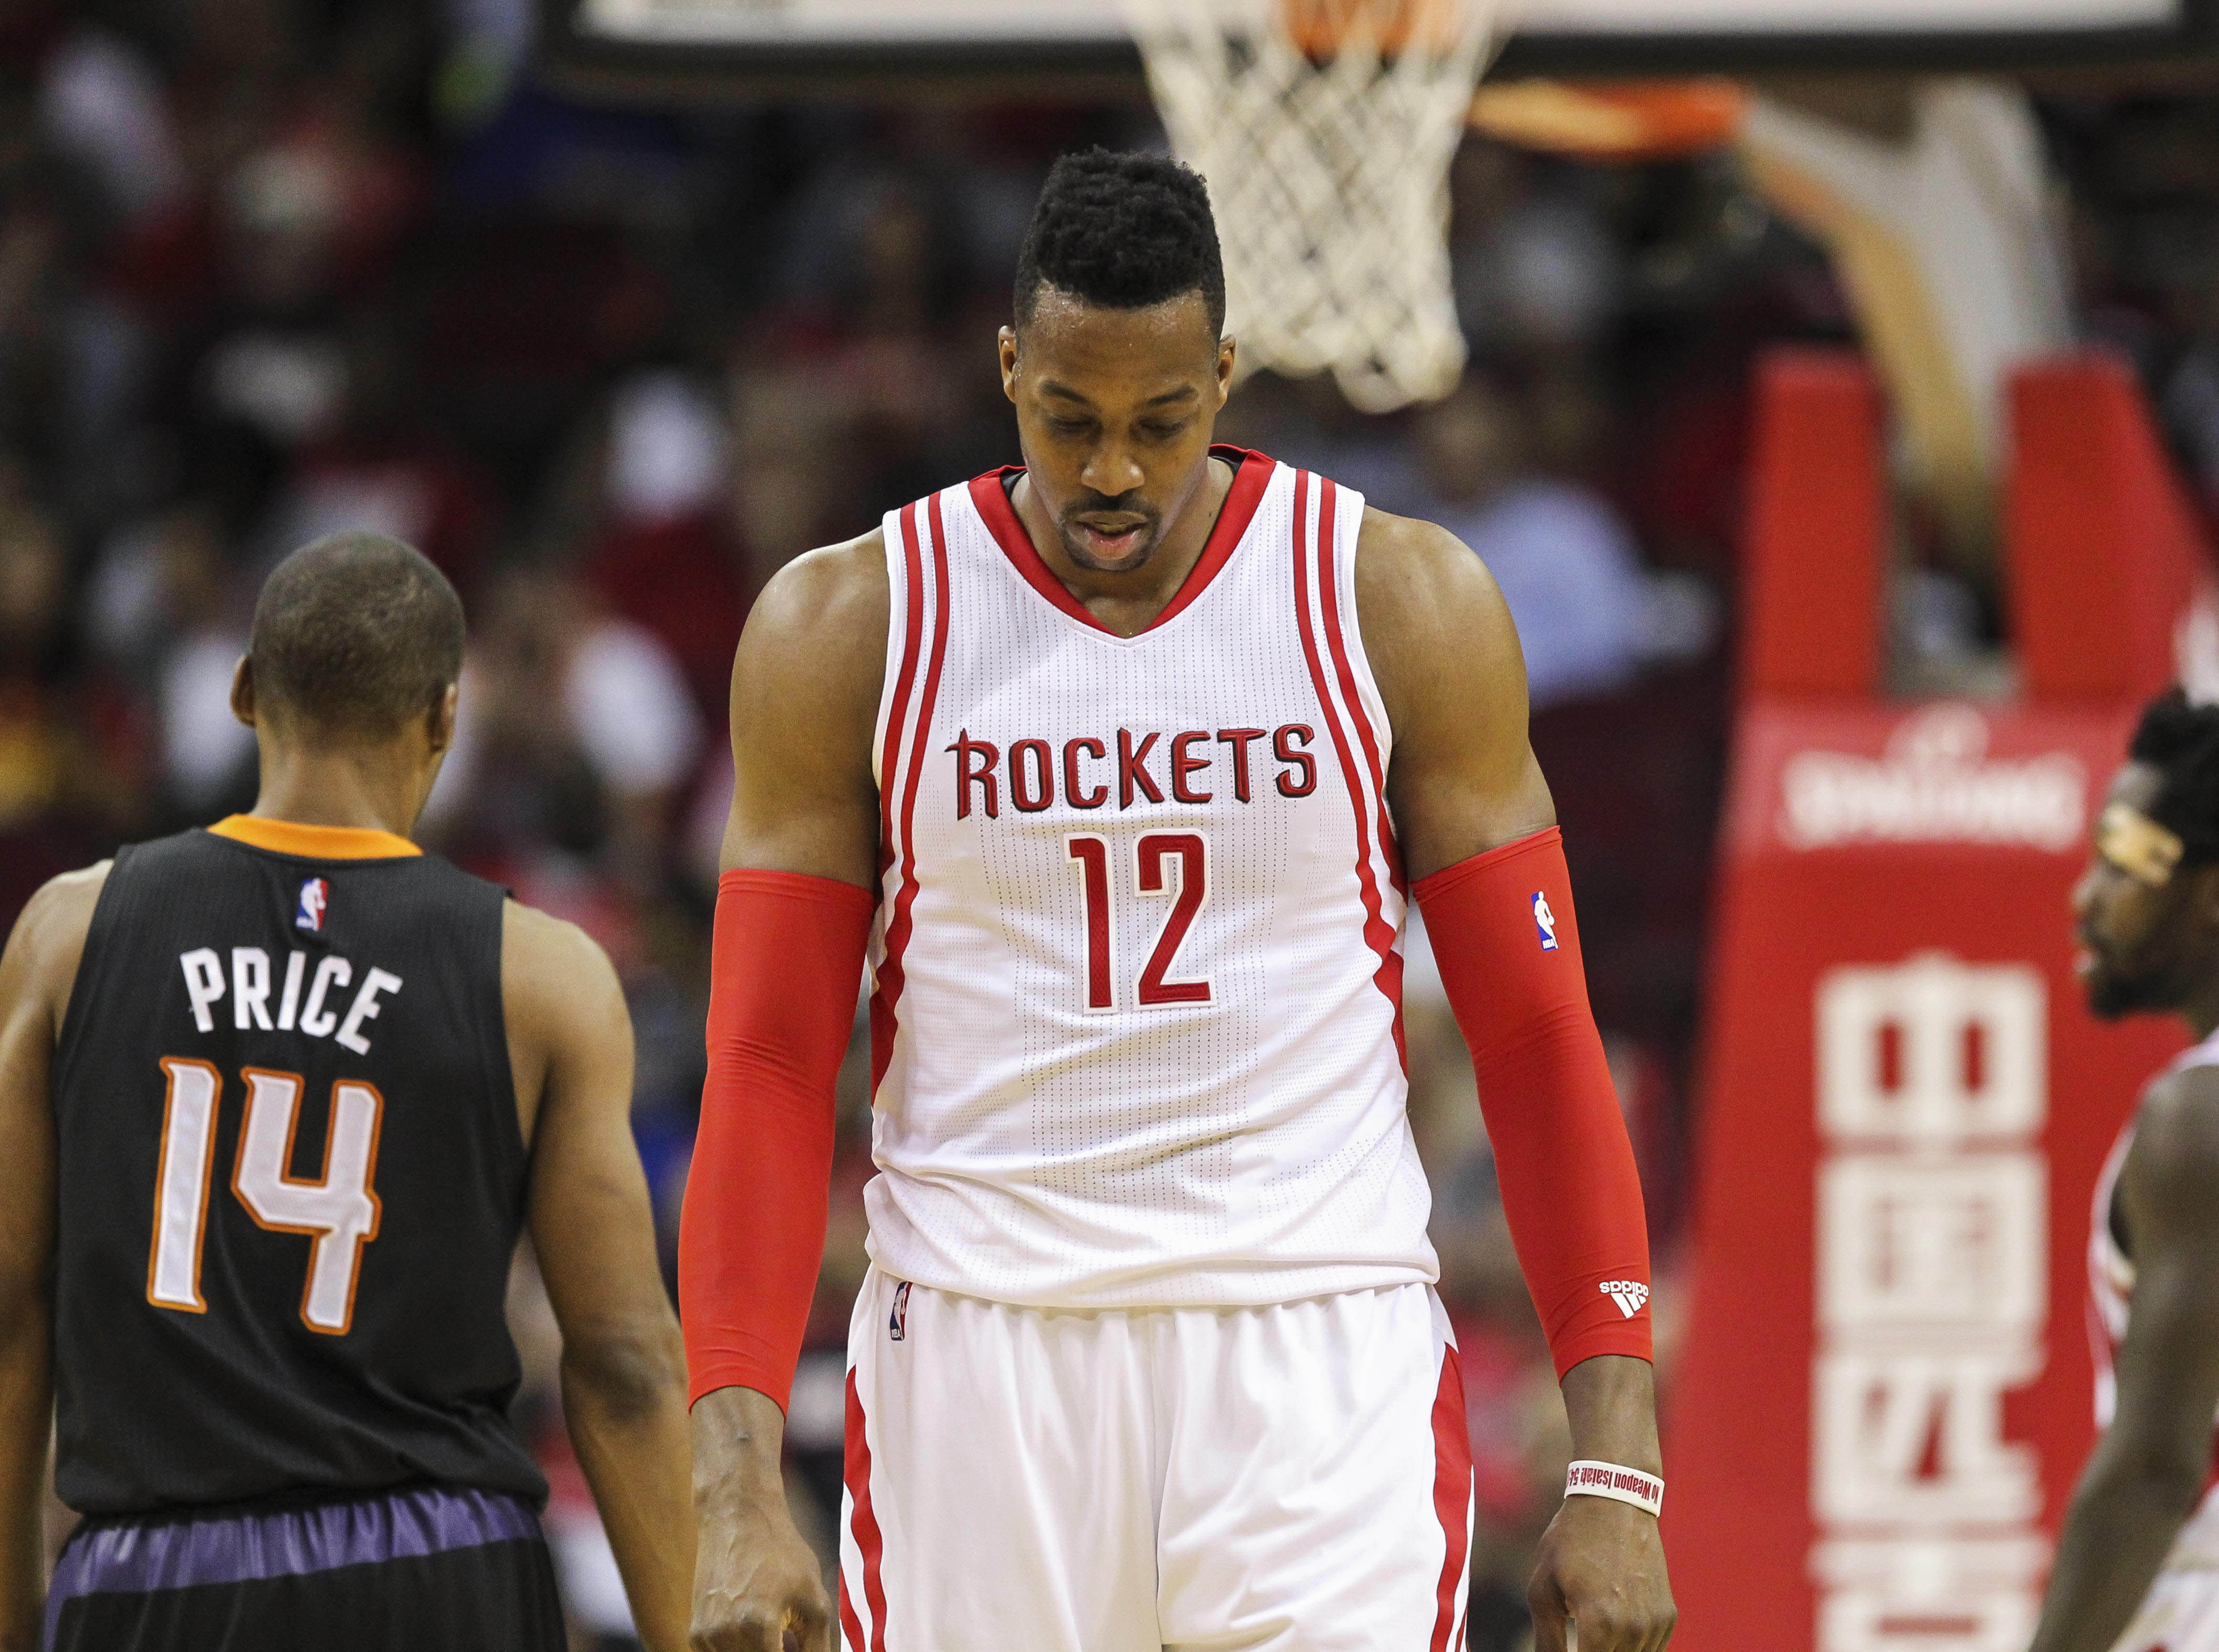 Dwight Howard must realize that his days as a top offensive player are long gone